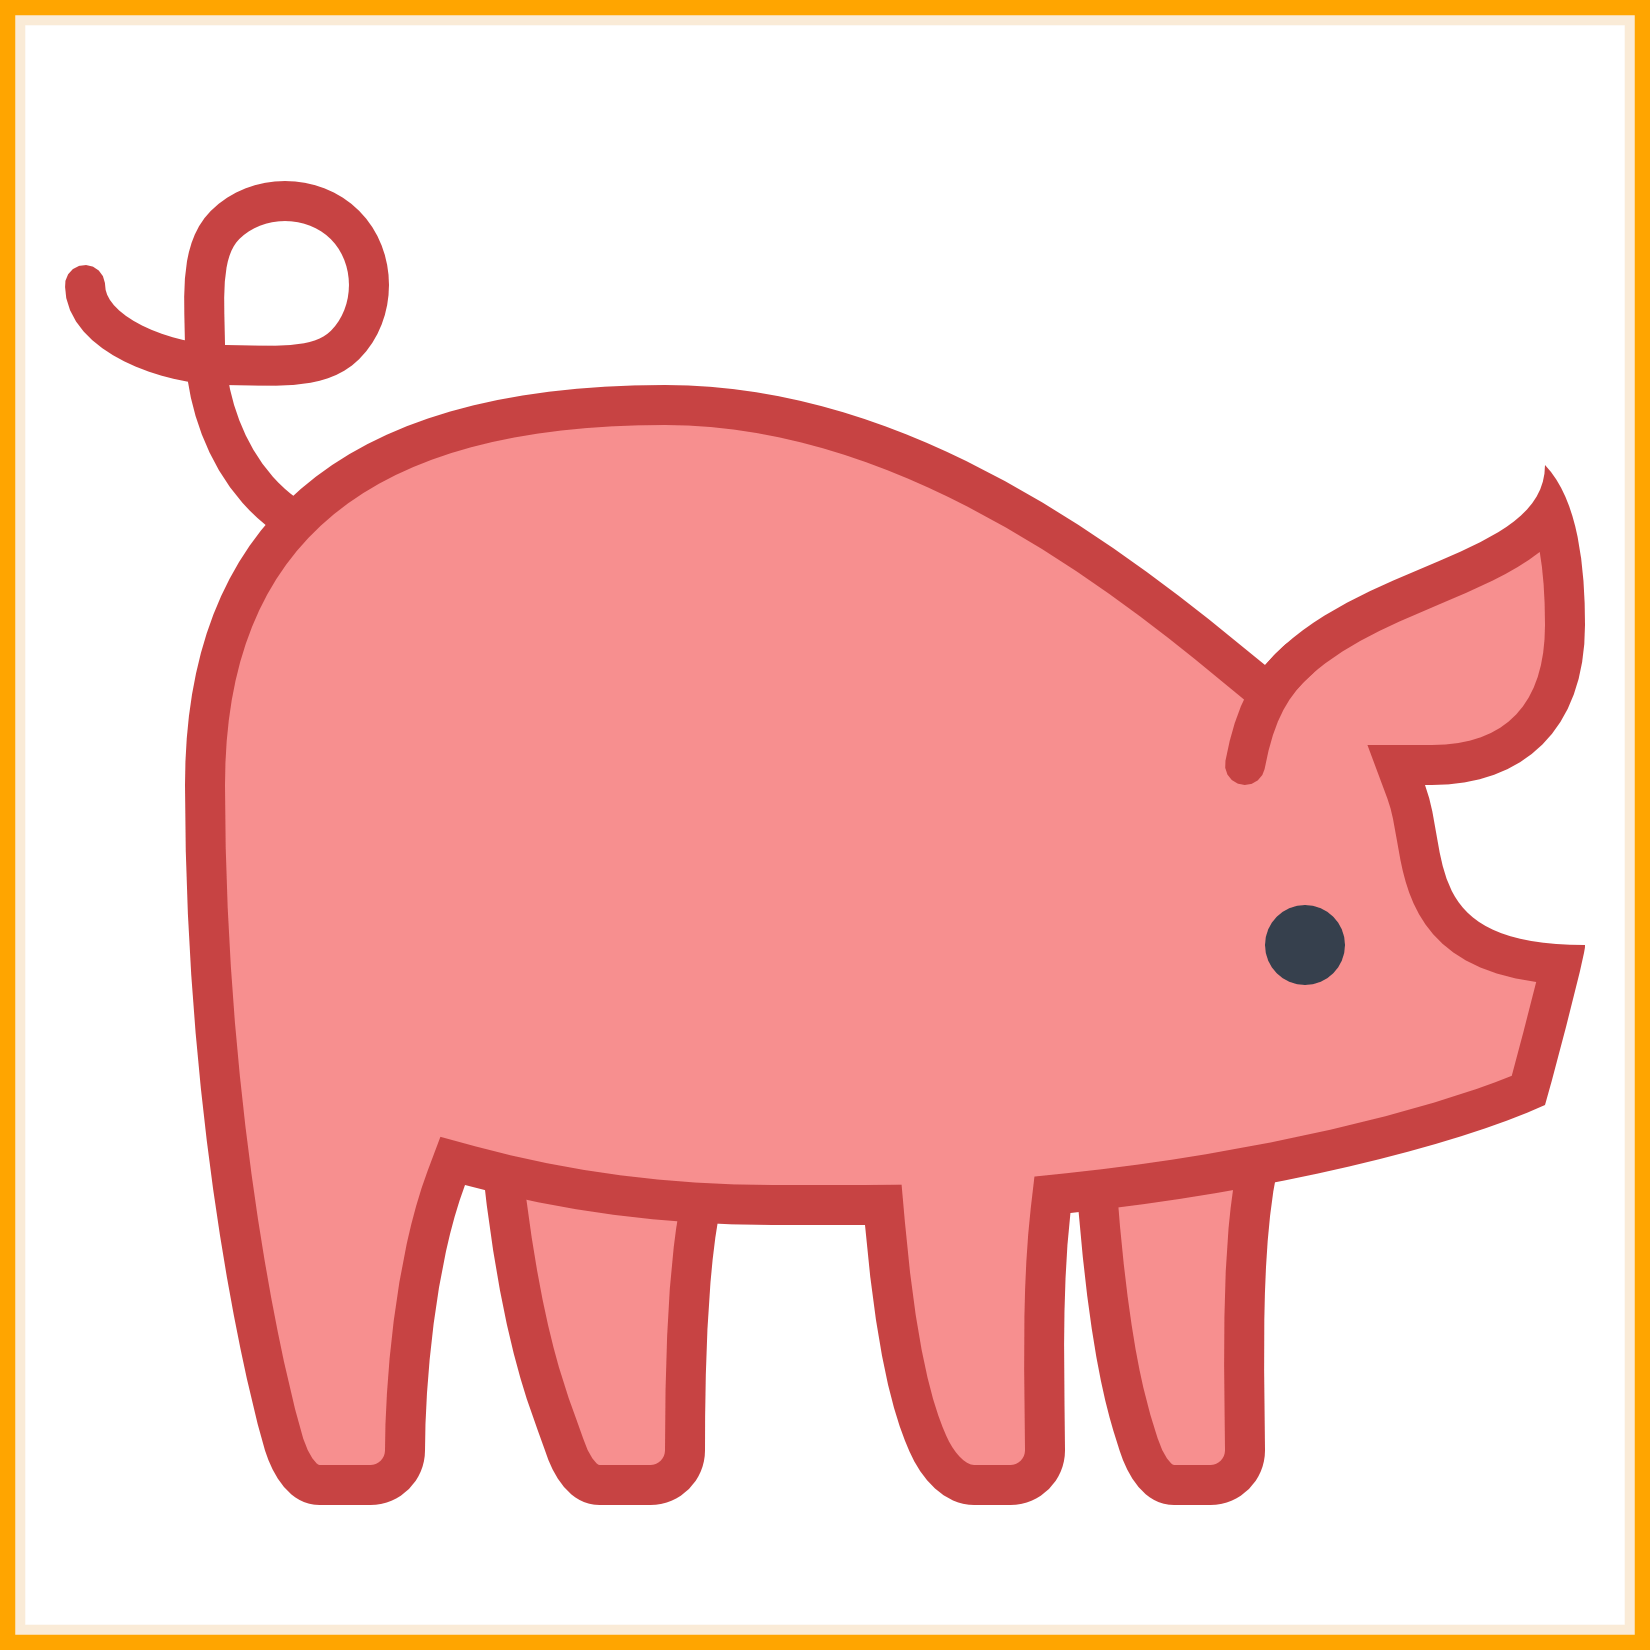 Pig at getdrawings com. Exercise clipart cute